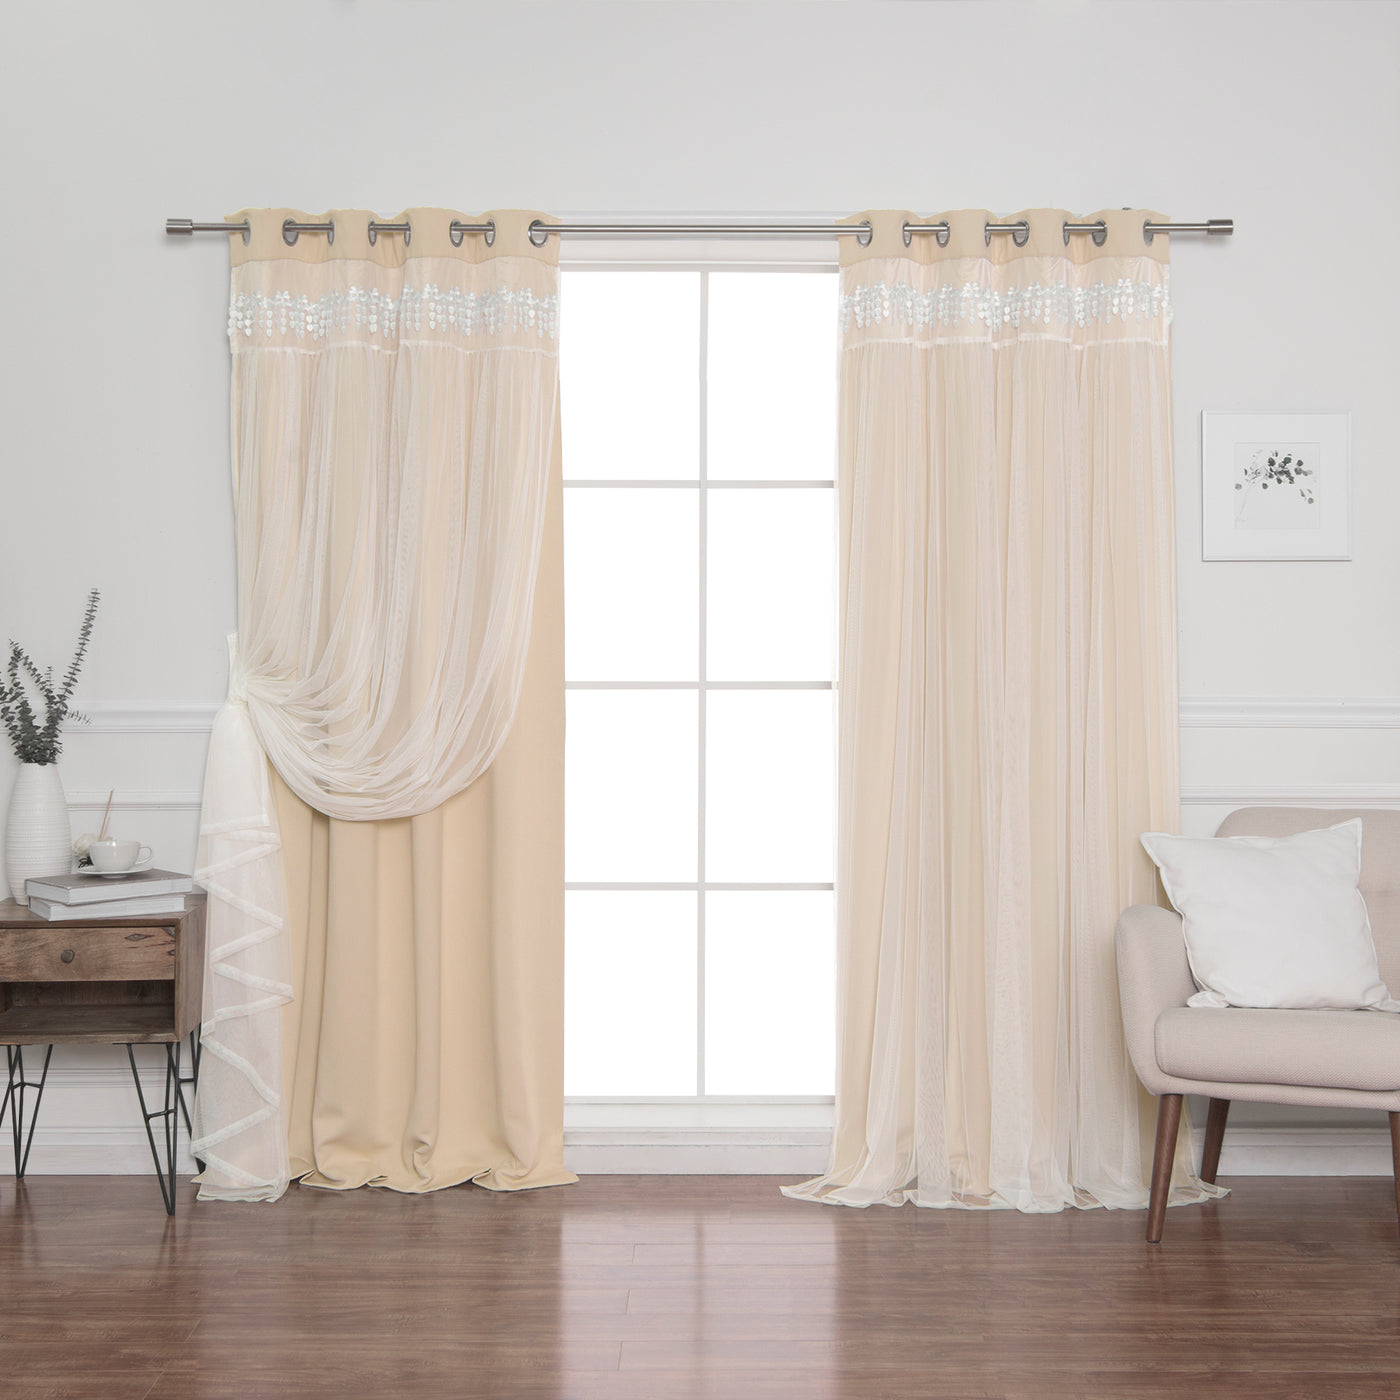 Lace Overlay Blackout Curtains